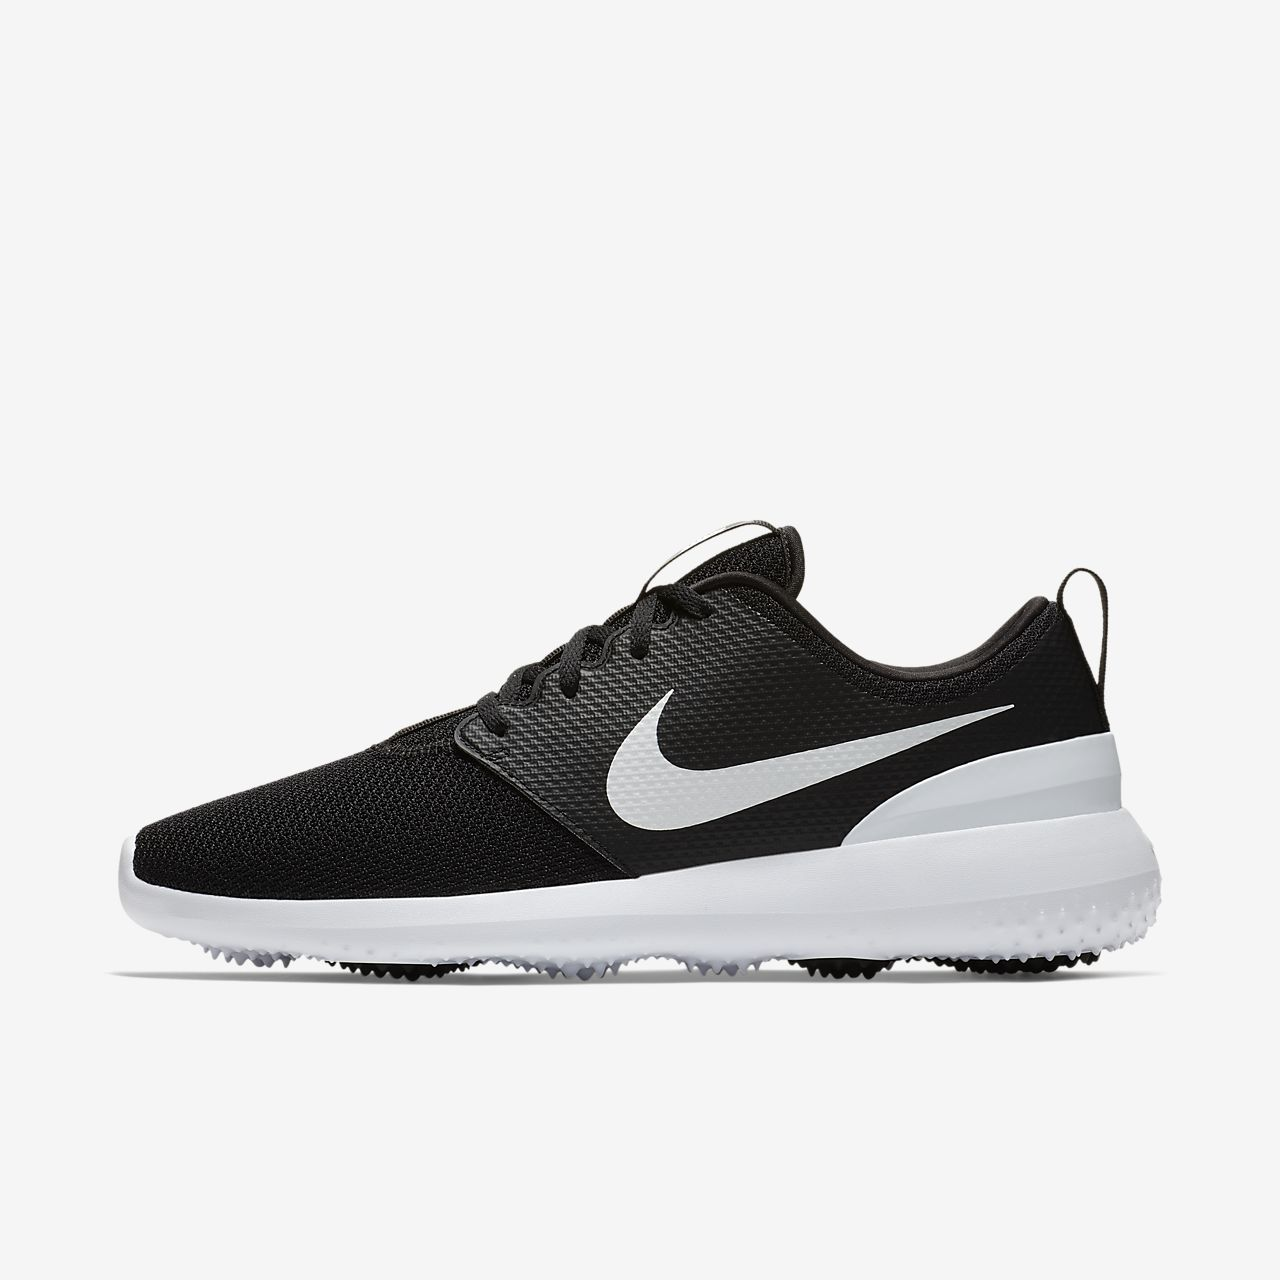 outlet store 61300 2d9d3 ... Nike Roshe G Men s Golf Shoe